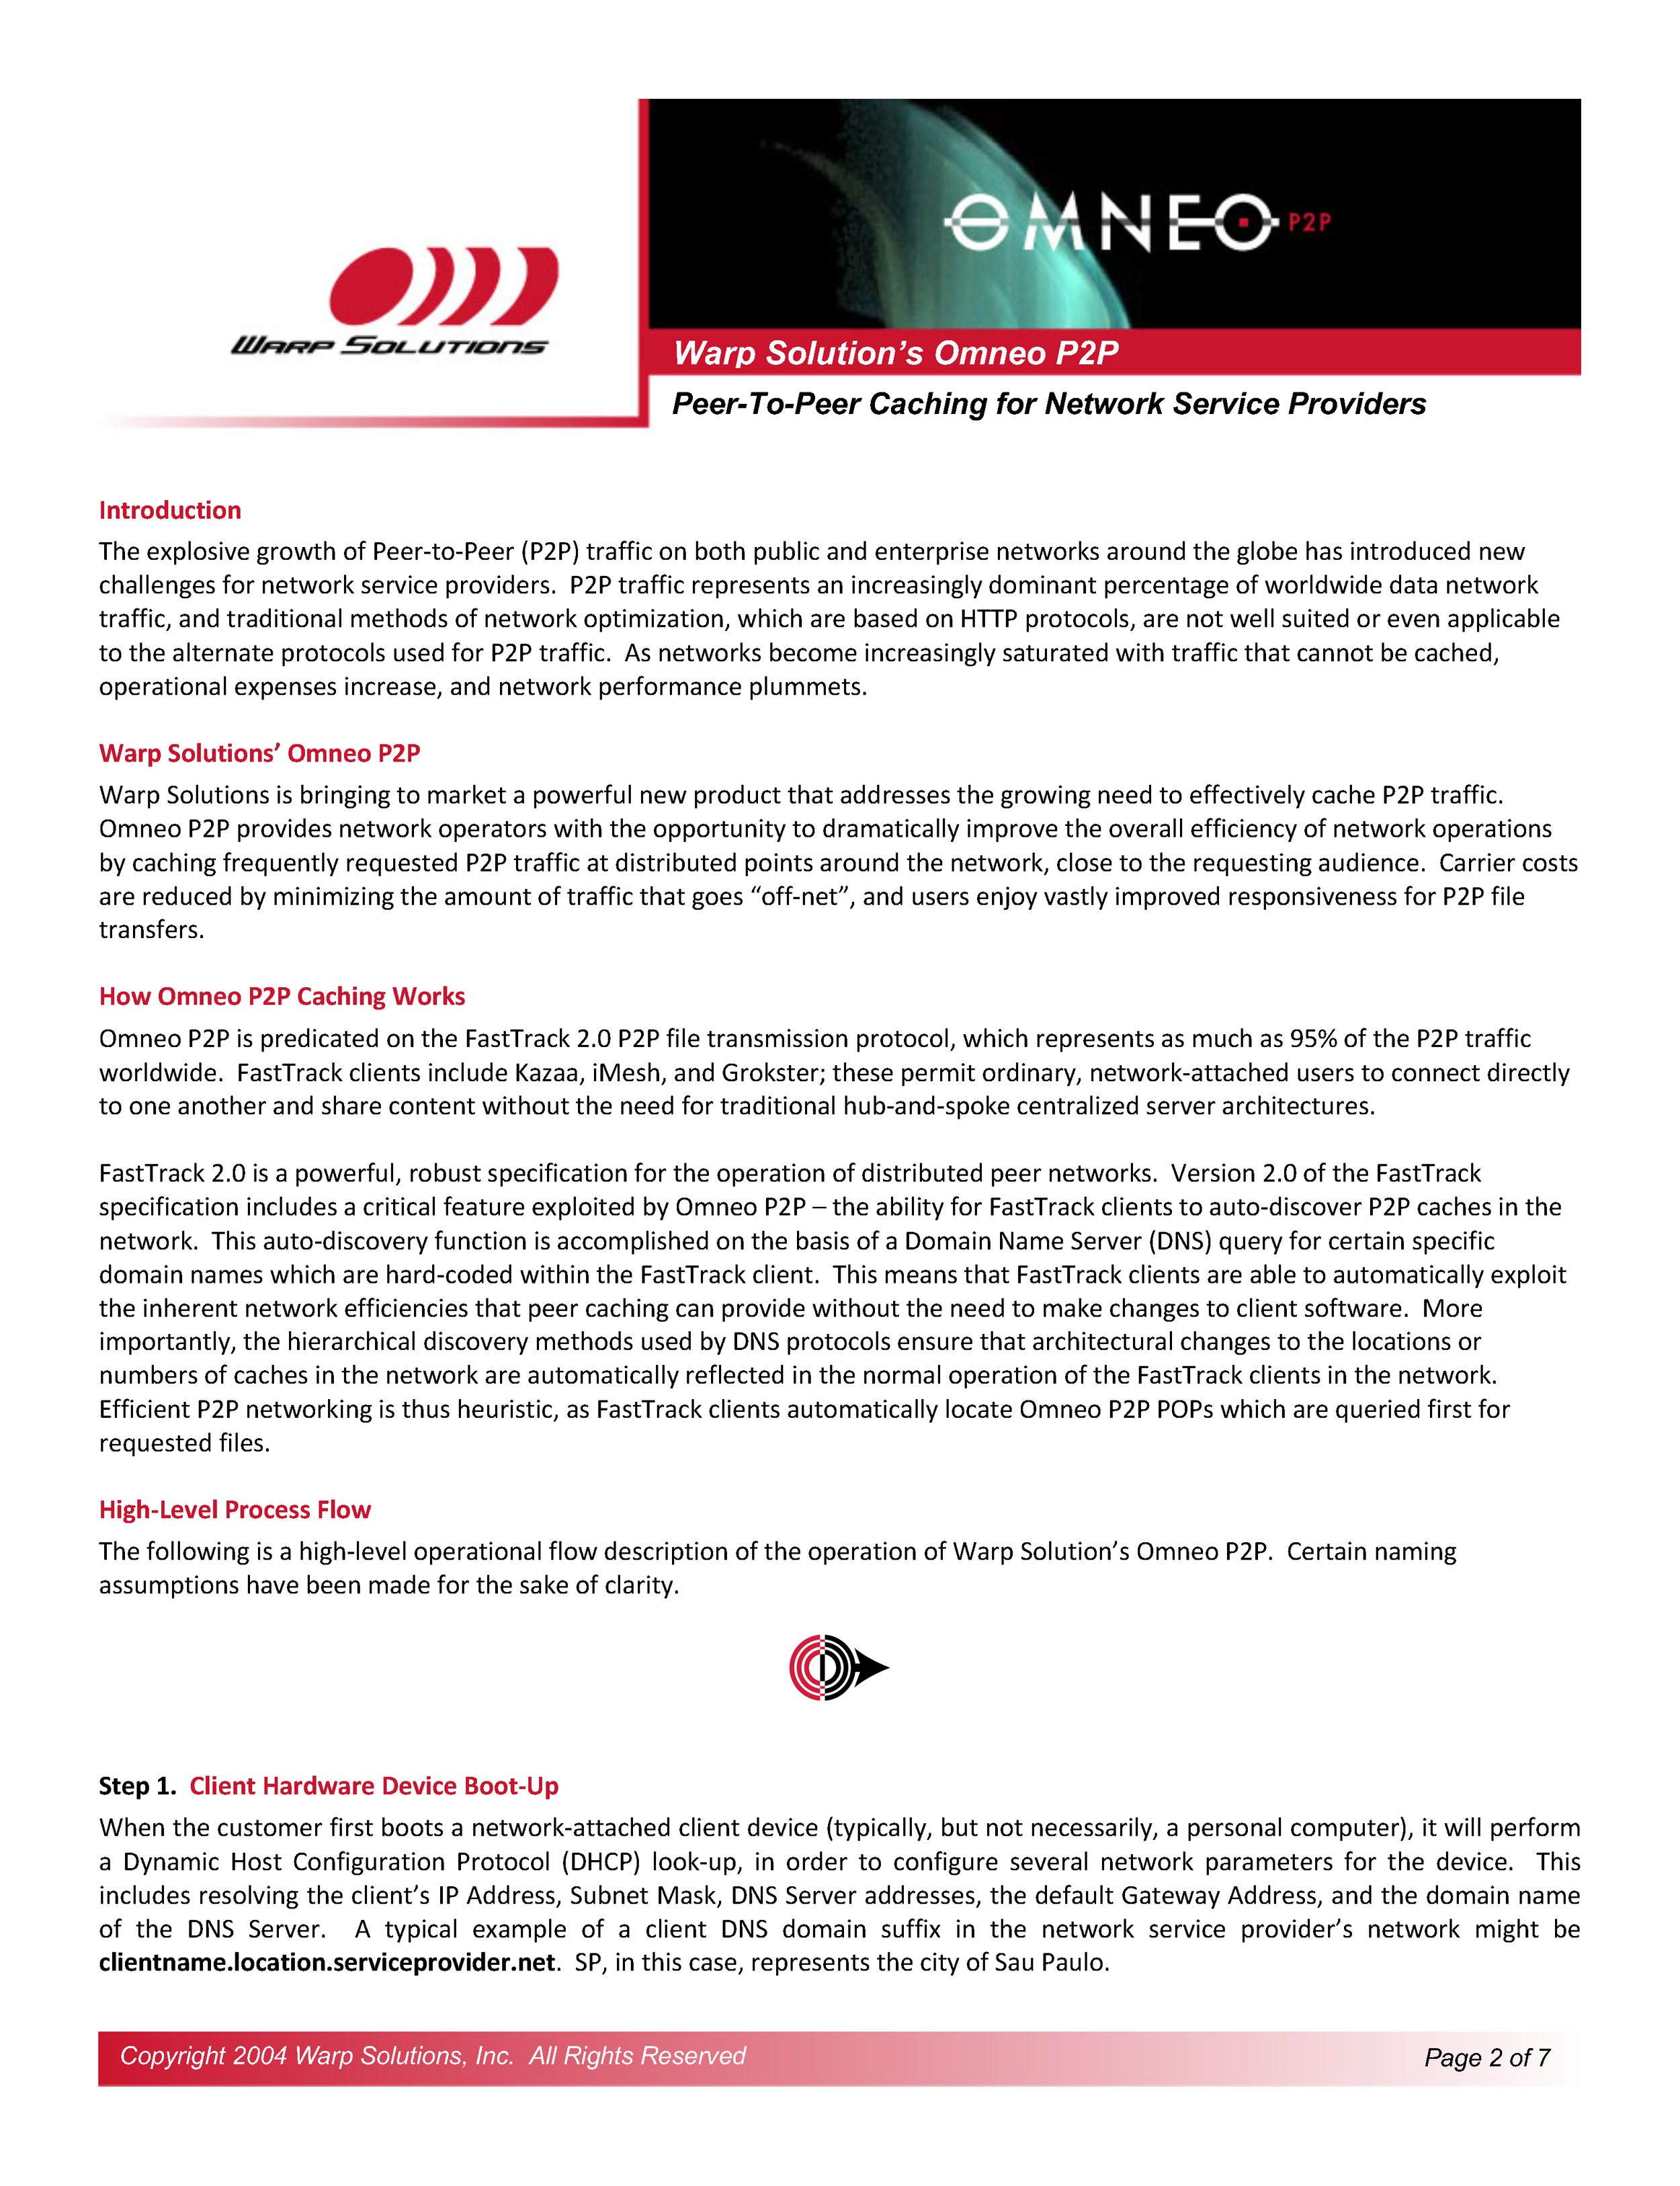 White Paper Omneo P2P 1.1_Page_2.png